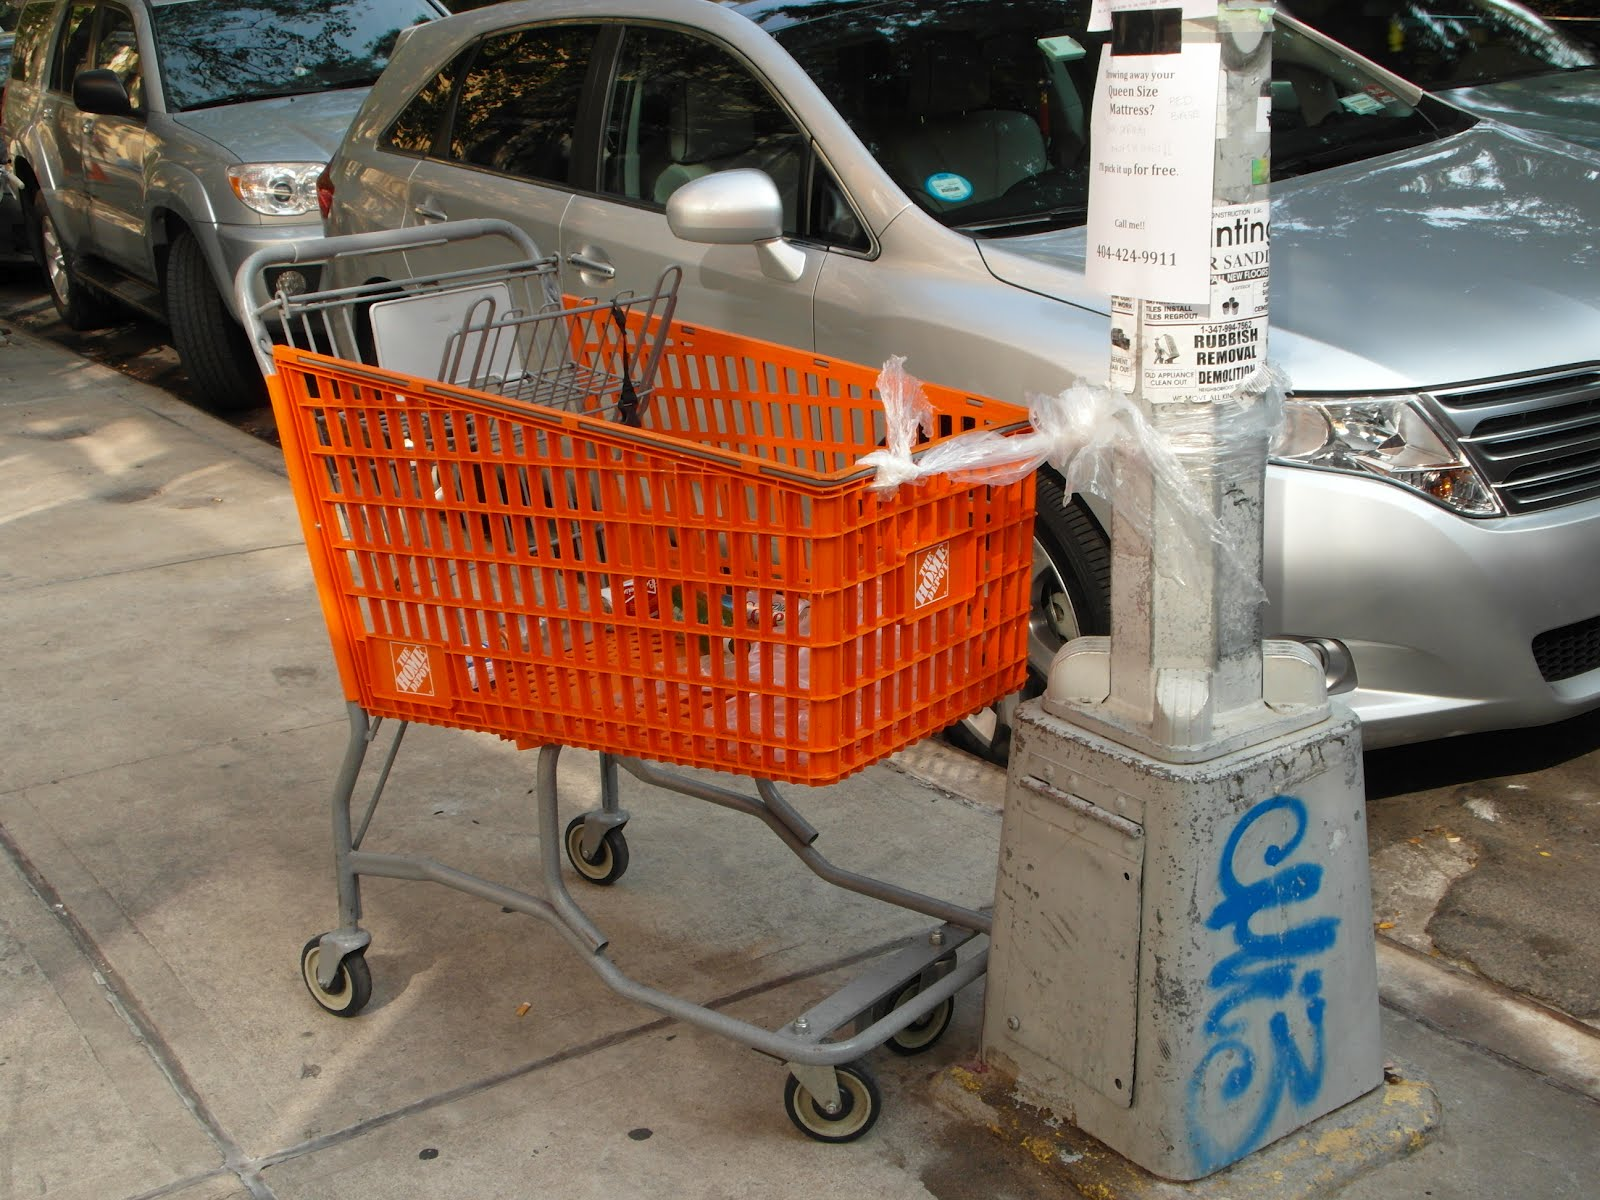 Home Depot Carts And Wagons : Ev grieve today in photos of a home depot cart tied to